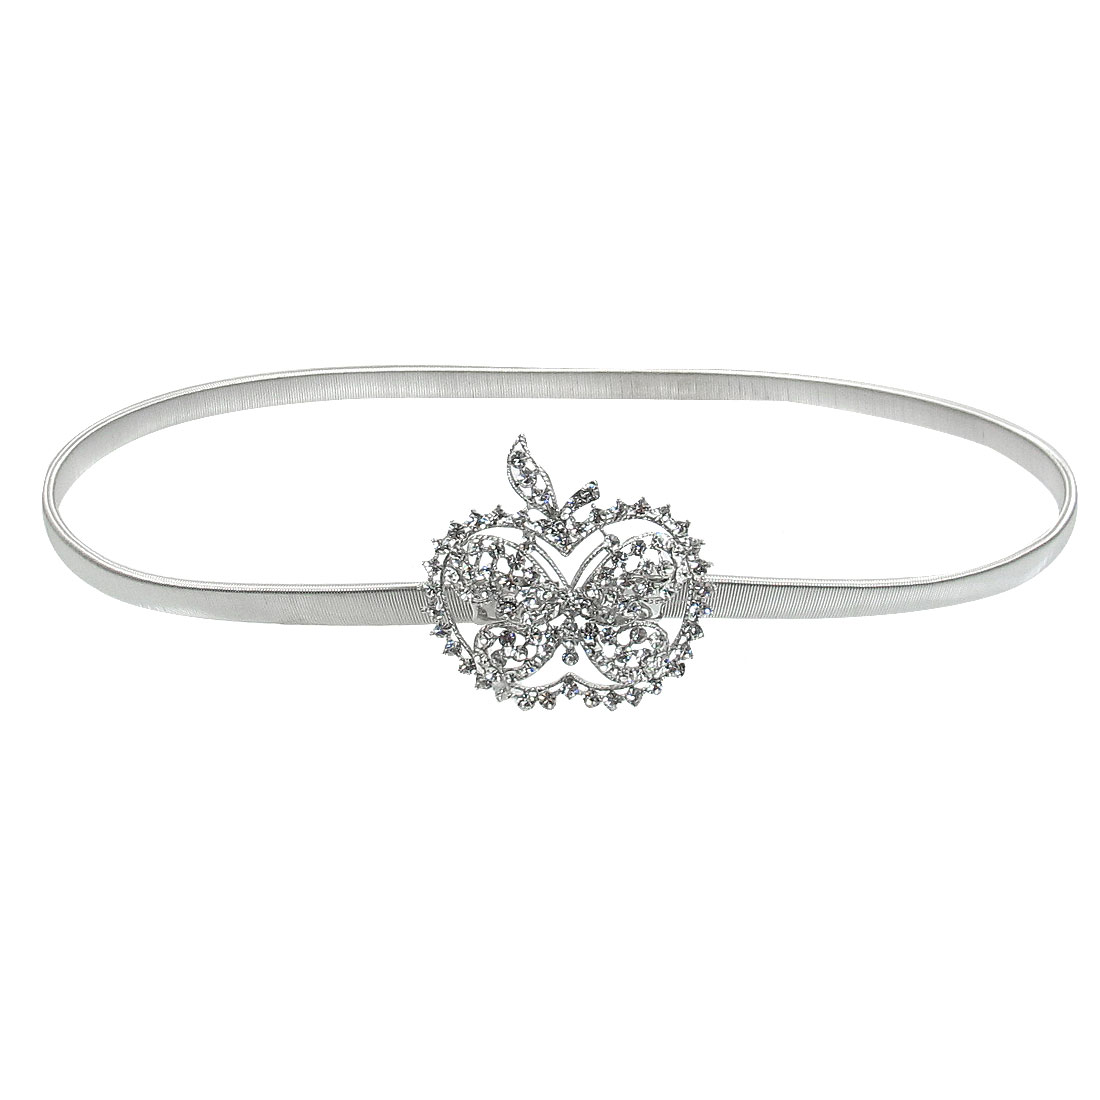 Silver Tone Apple Butterfly Design Stretchy Metal Waistband for Ladies